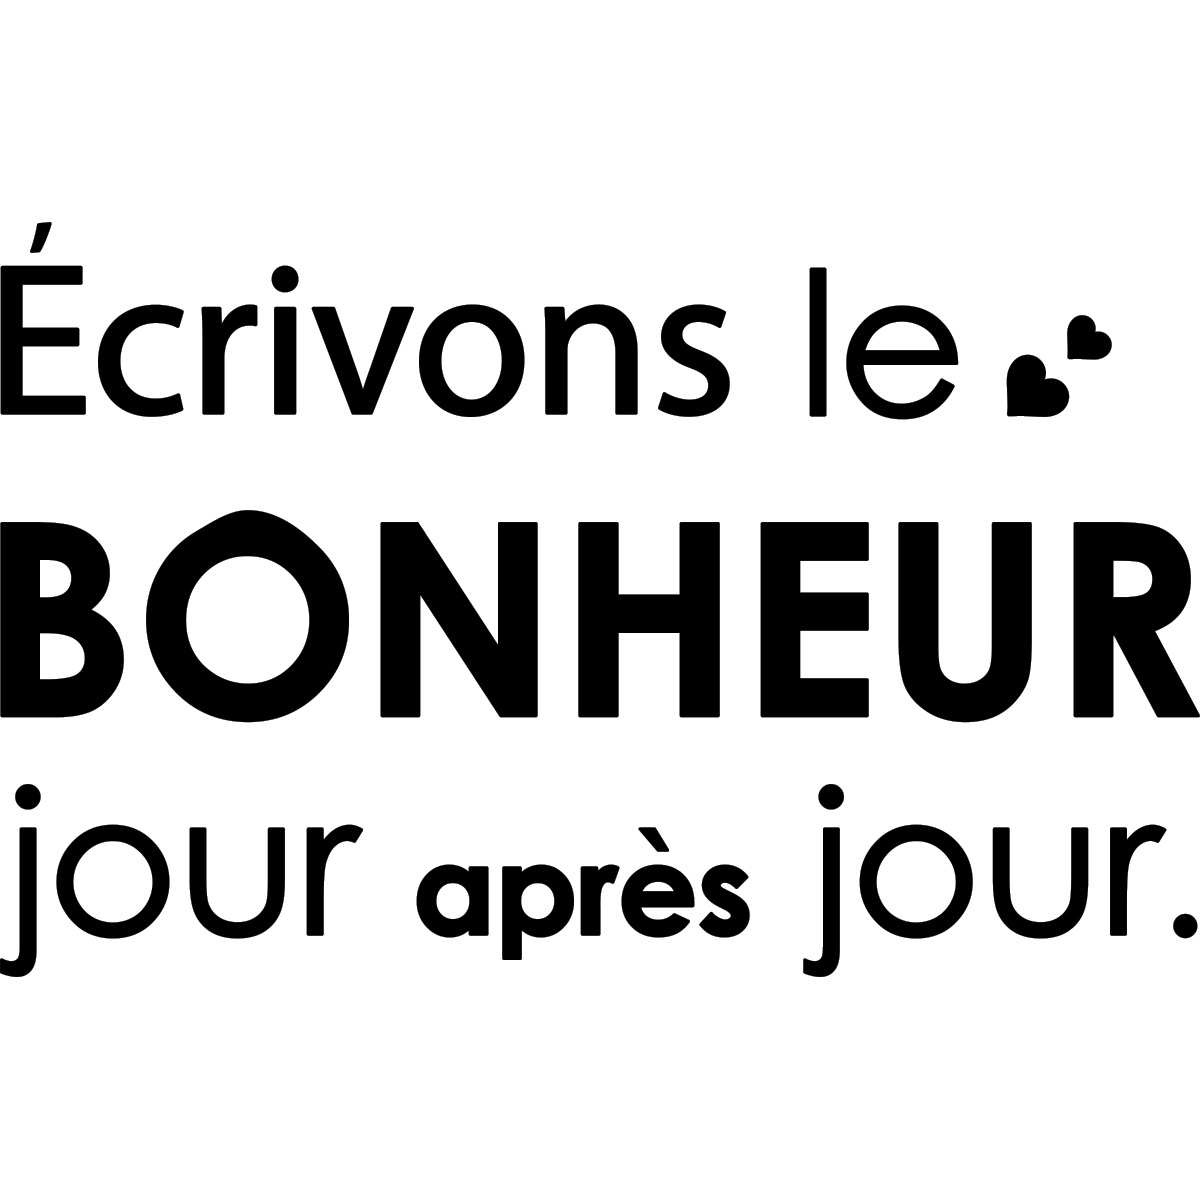 sticker citation ecrivons le bonheur jour apr s jour stickers citations fran ais ambiance. Black Bedroom Furniture Sets. Home Design Ideas